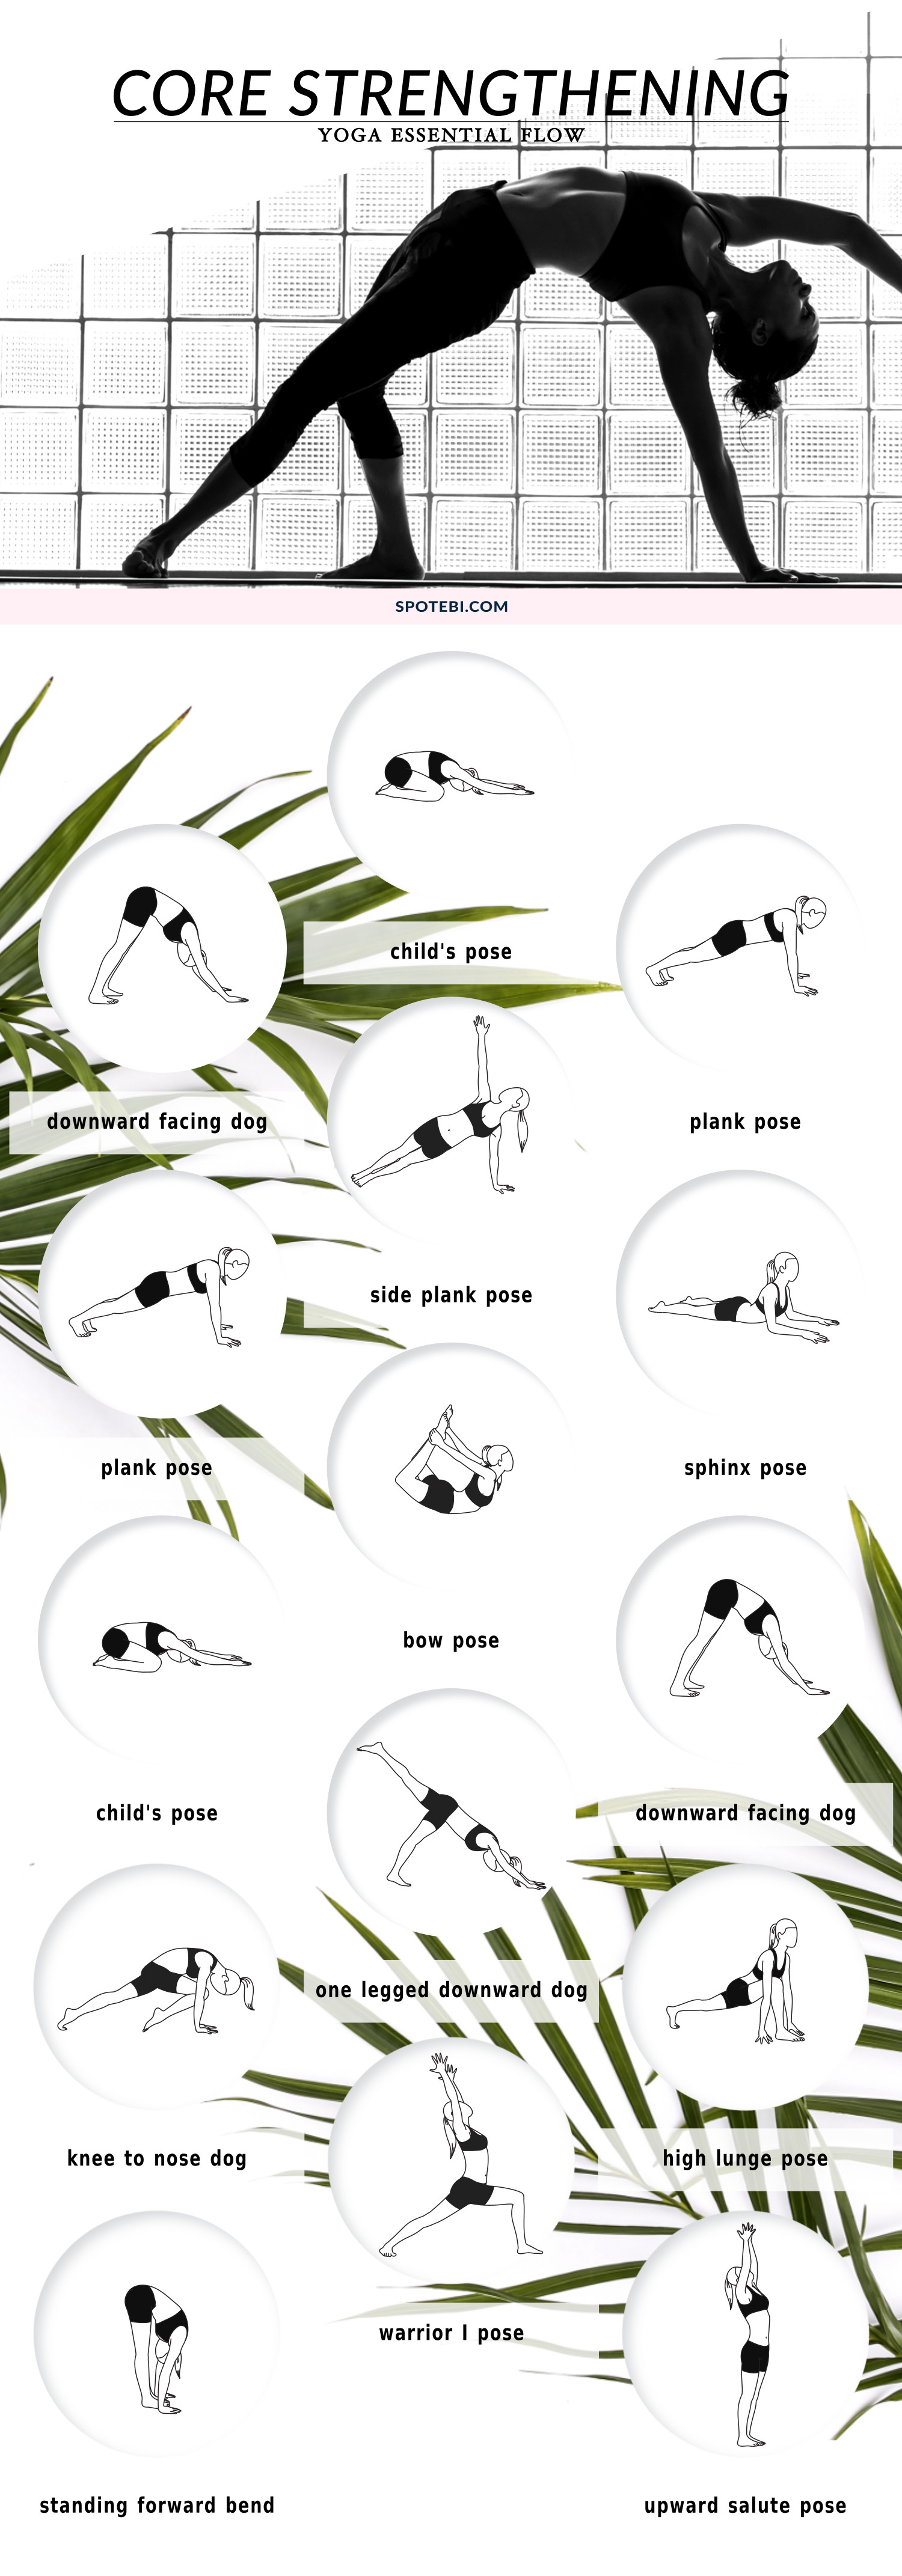 Build core strength, improve range of motion and develop long and lean muscles that will power up all your yoga flows. Focus on your breath and allow your body and mind to relax as you move through these core strengthening poses. https://www.spotebi.com/yoga-sequences/core-strengthening-flow/